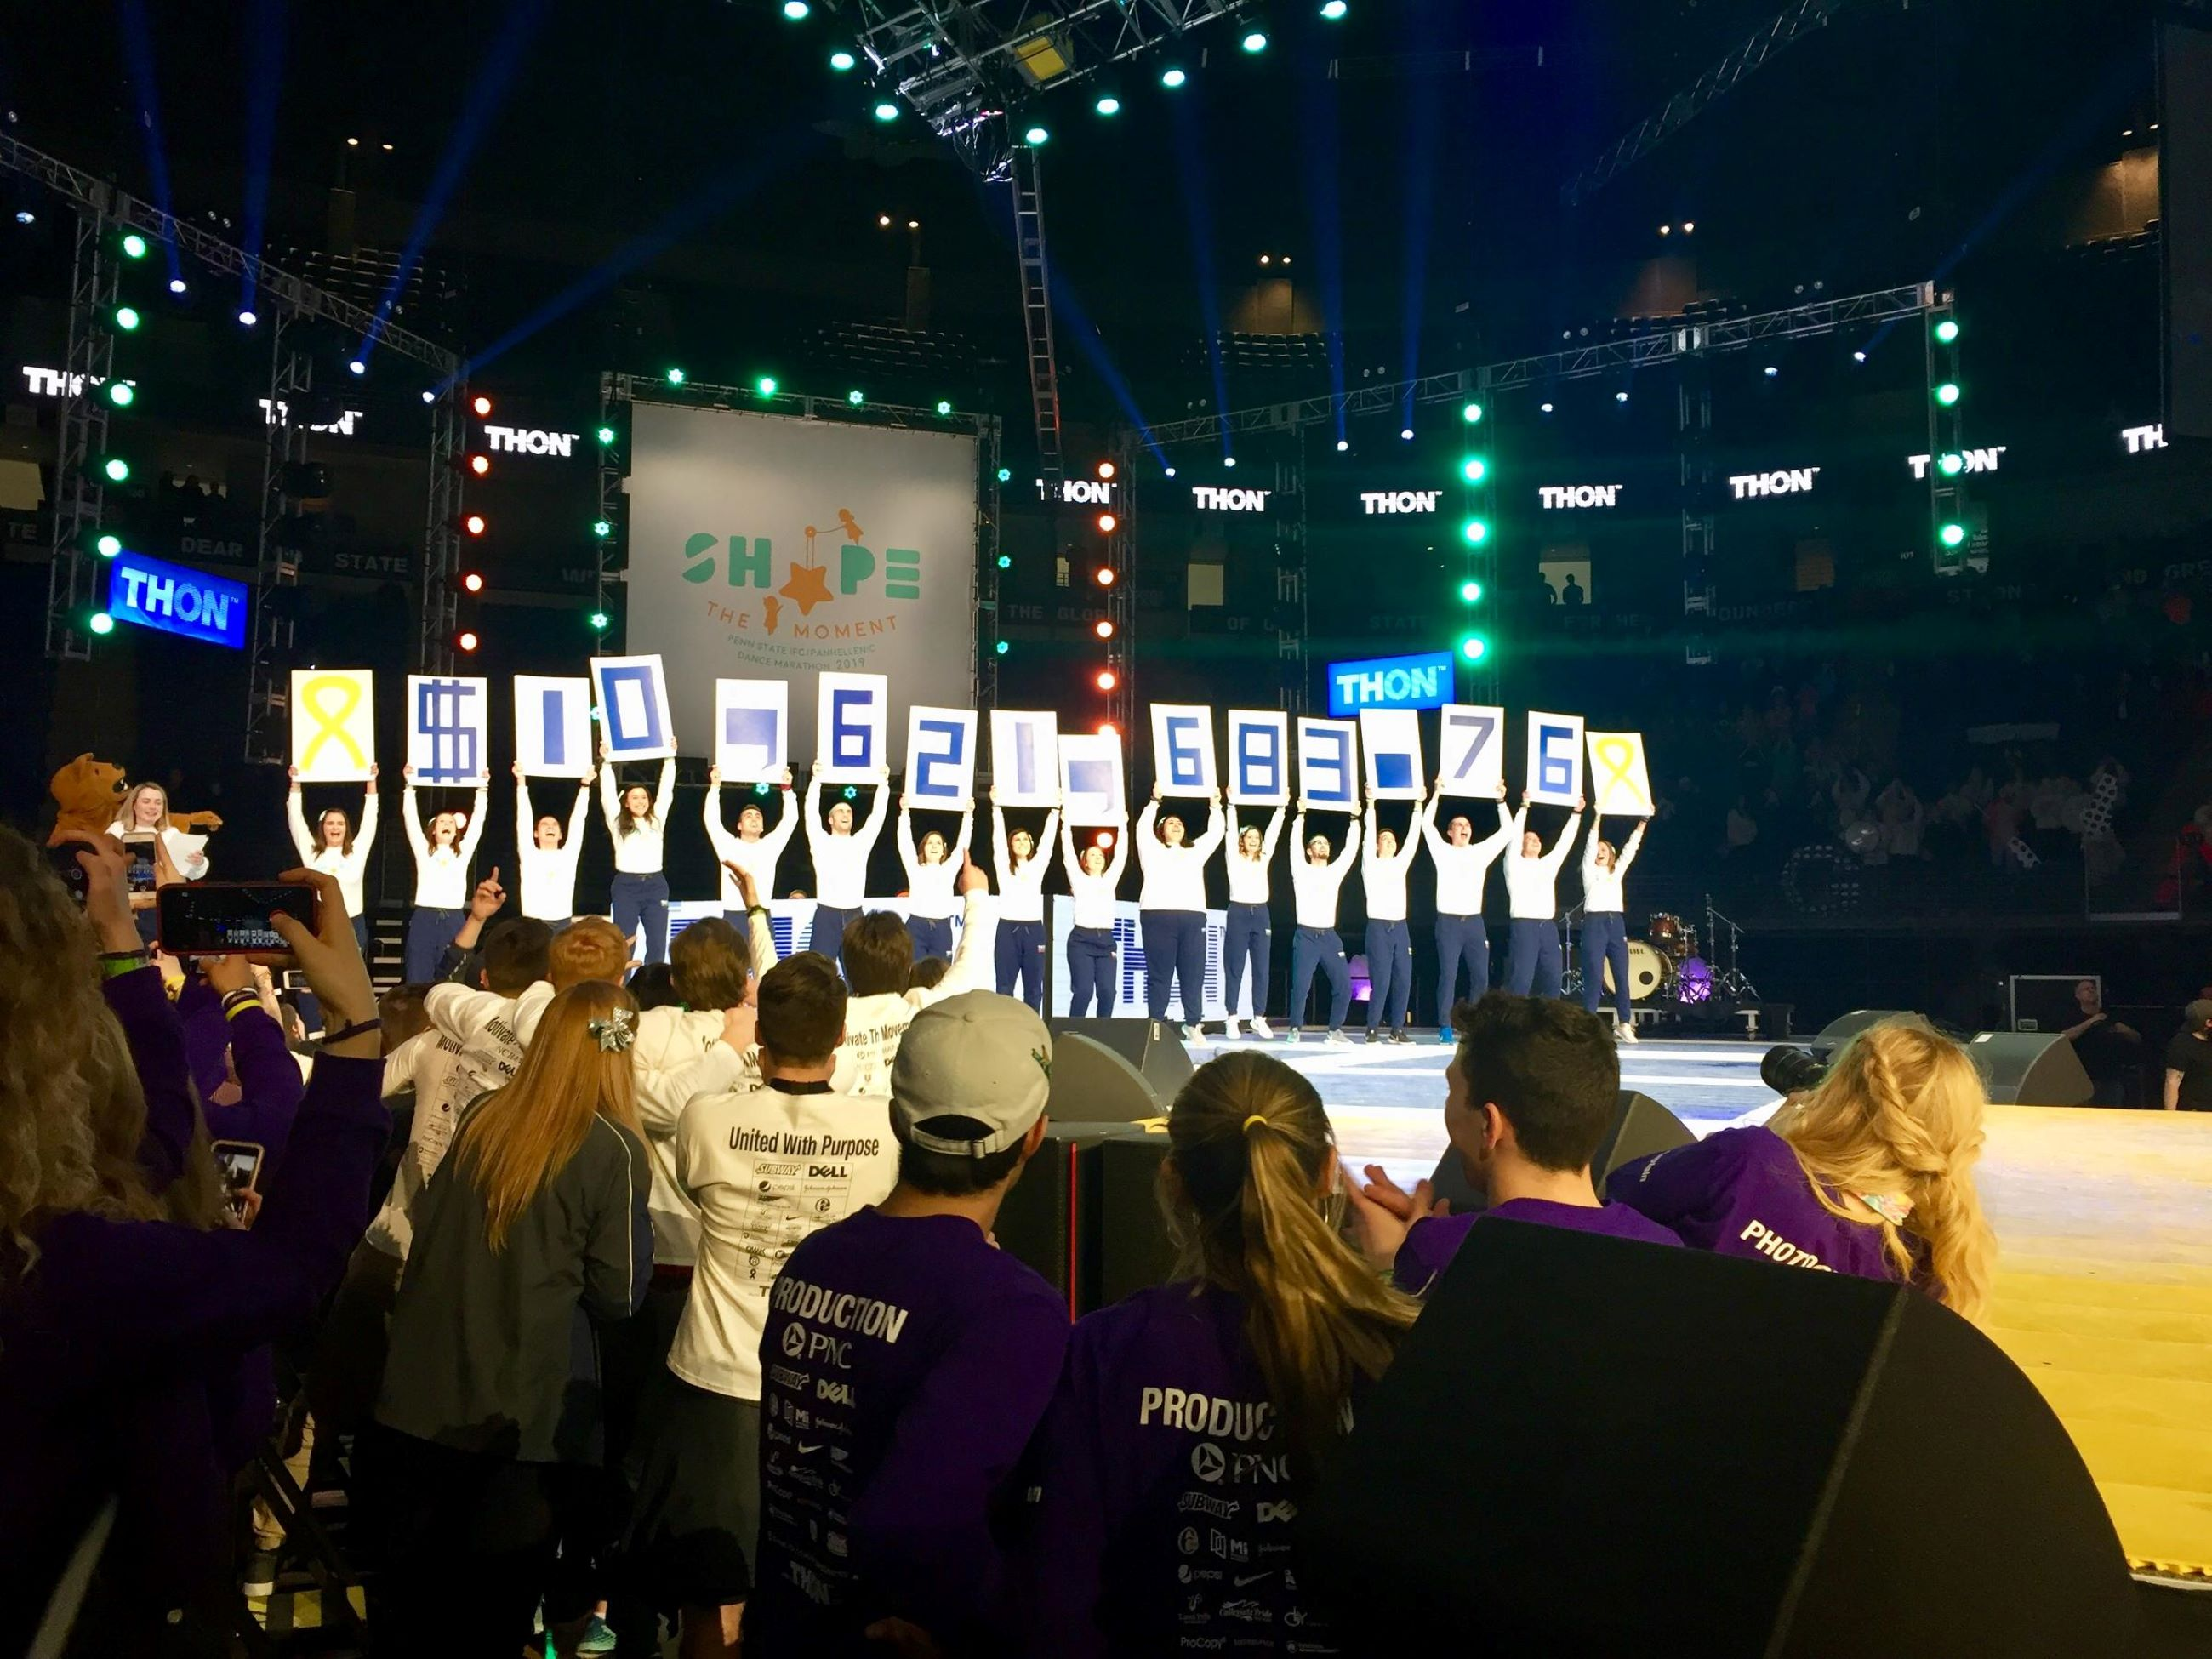 Penn State THON participants raise up signs indicating more than $10 million raised for pediatric cancer research in 2019.